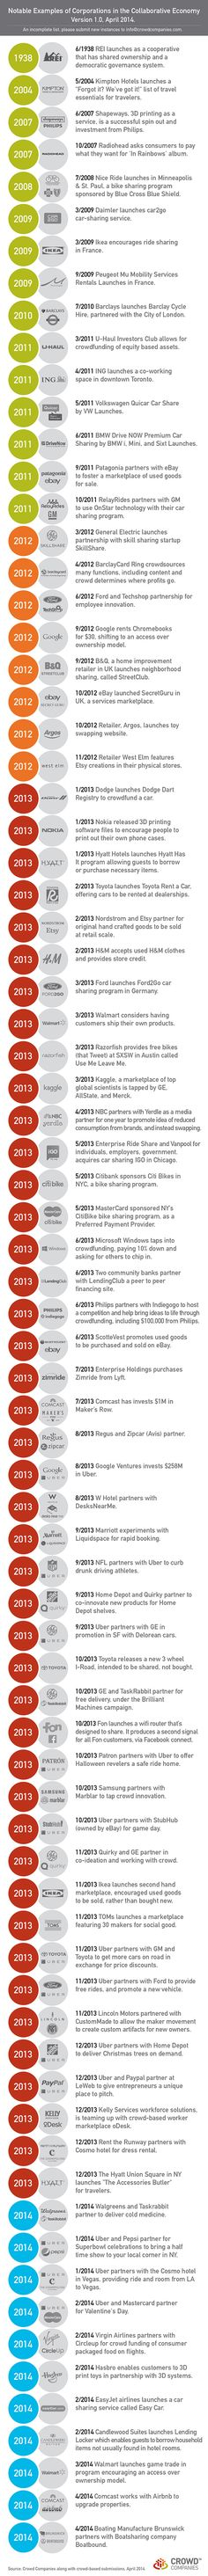 Timeline of Corporations in the Collaborative Economy